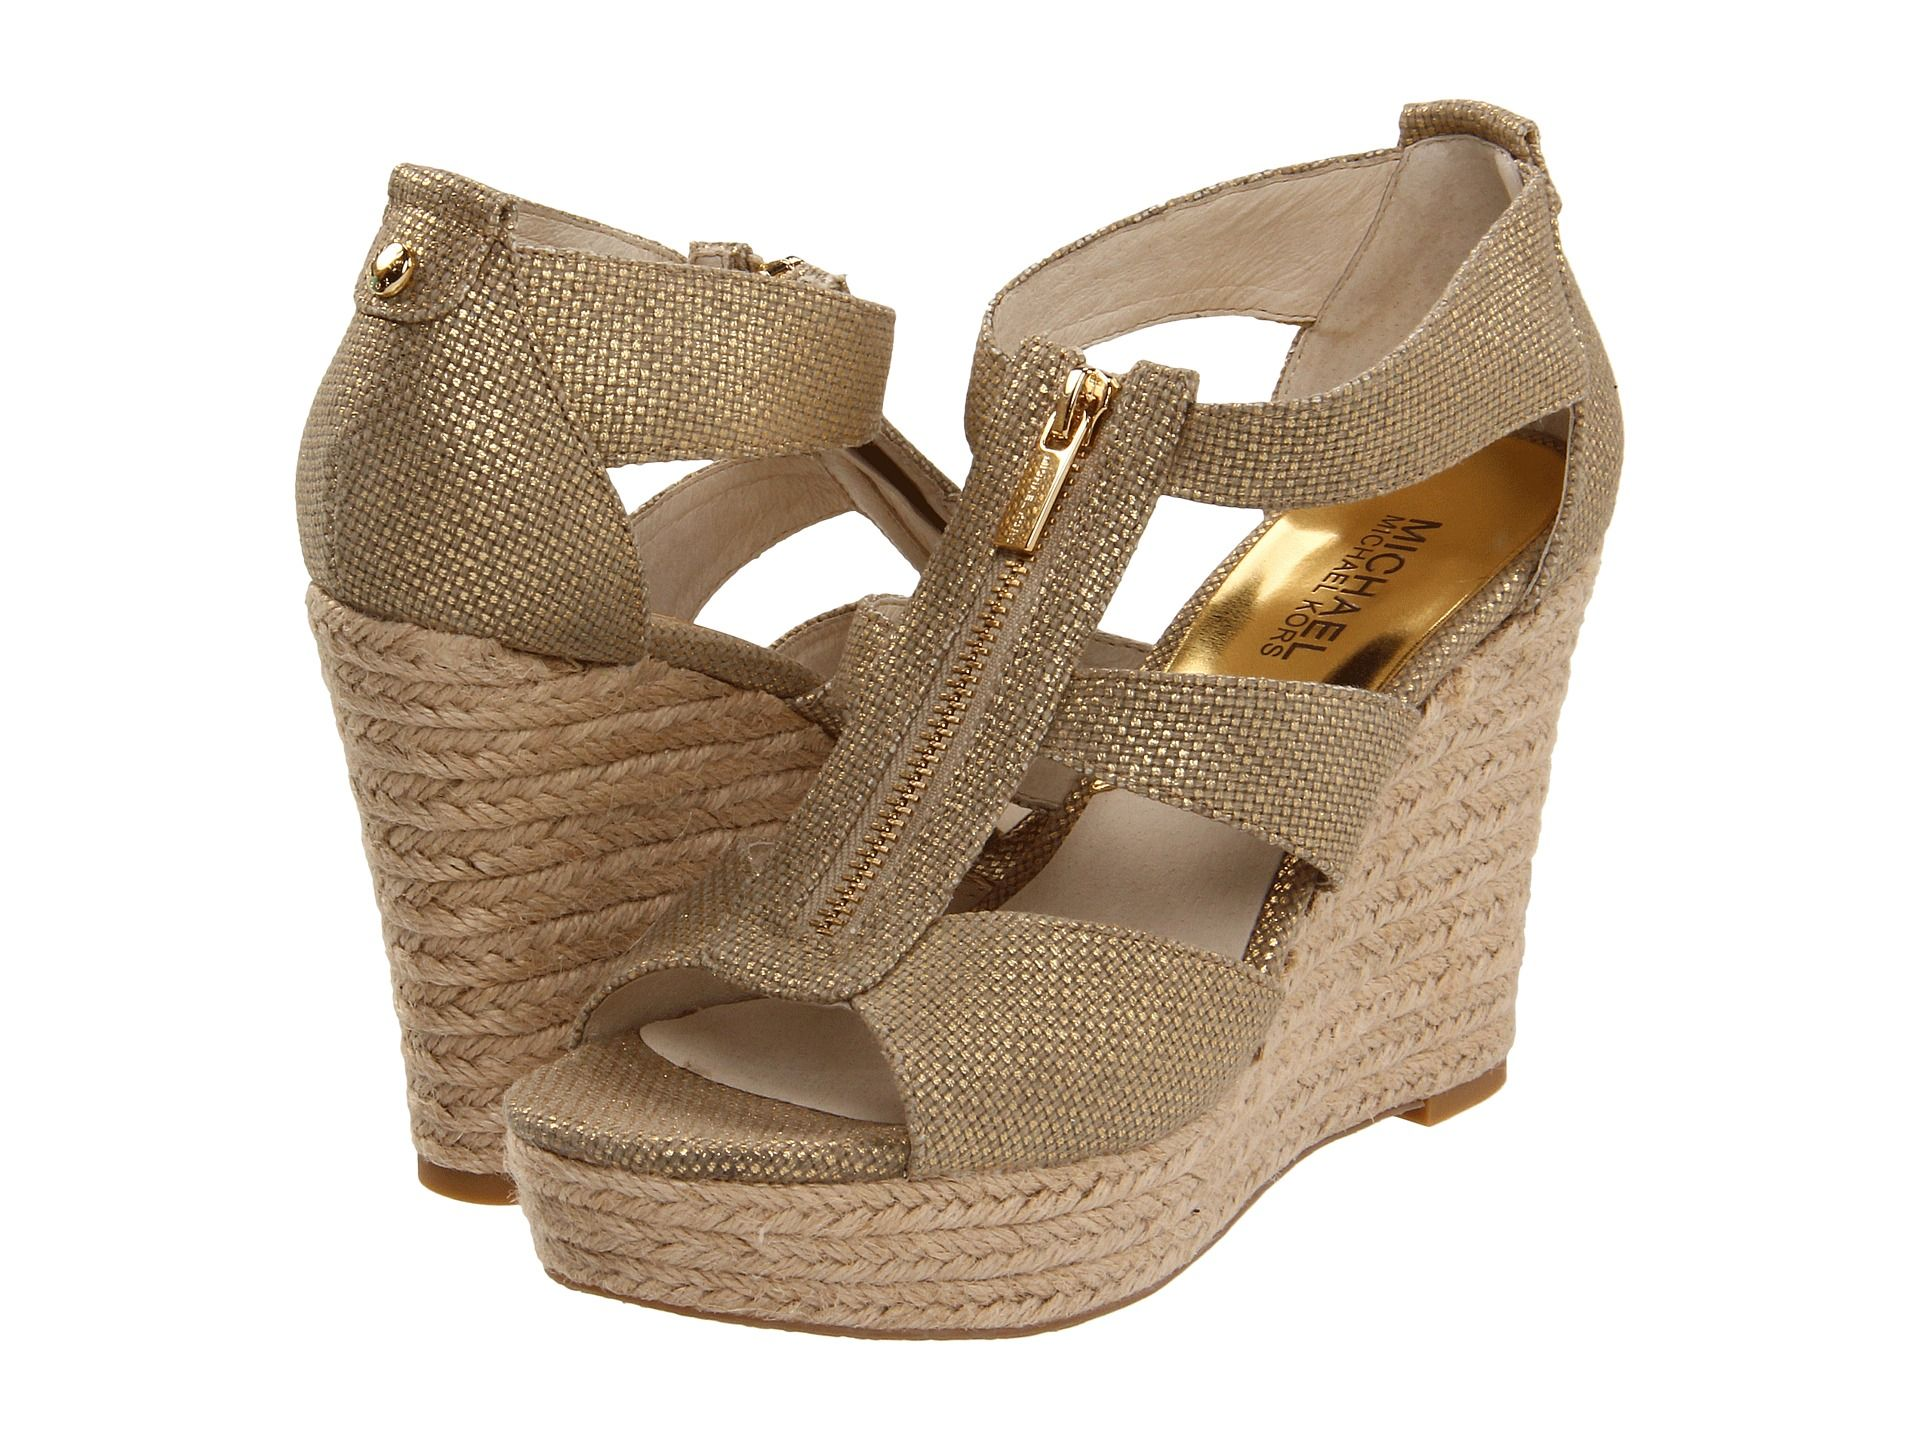 MICHAEL Michael Kors - Damita Wedge Price: $72 Your summery wardrobe will  thank you for